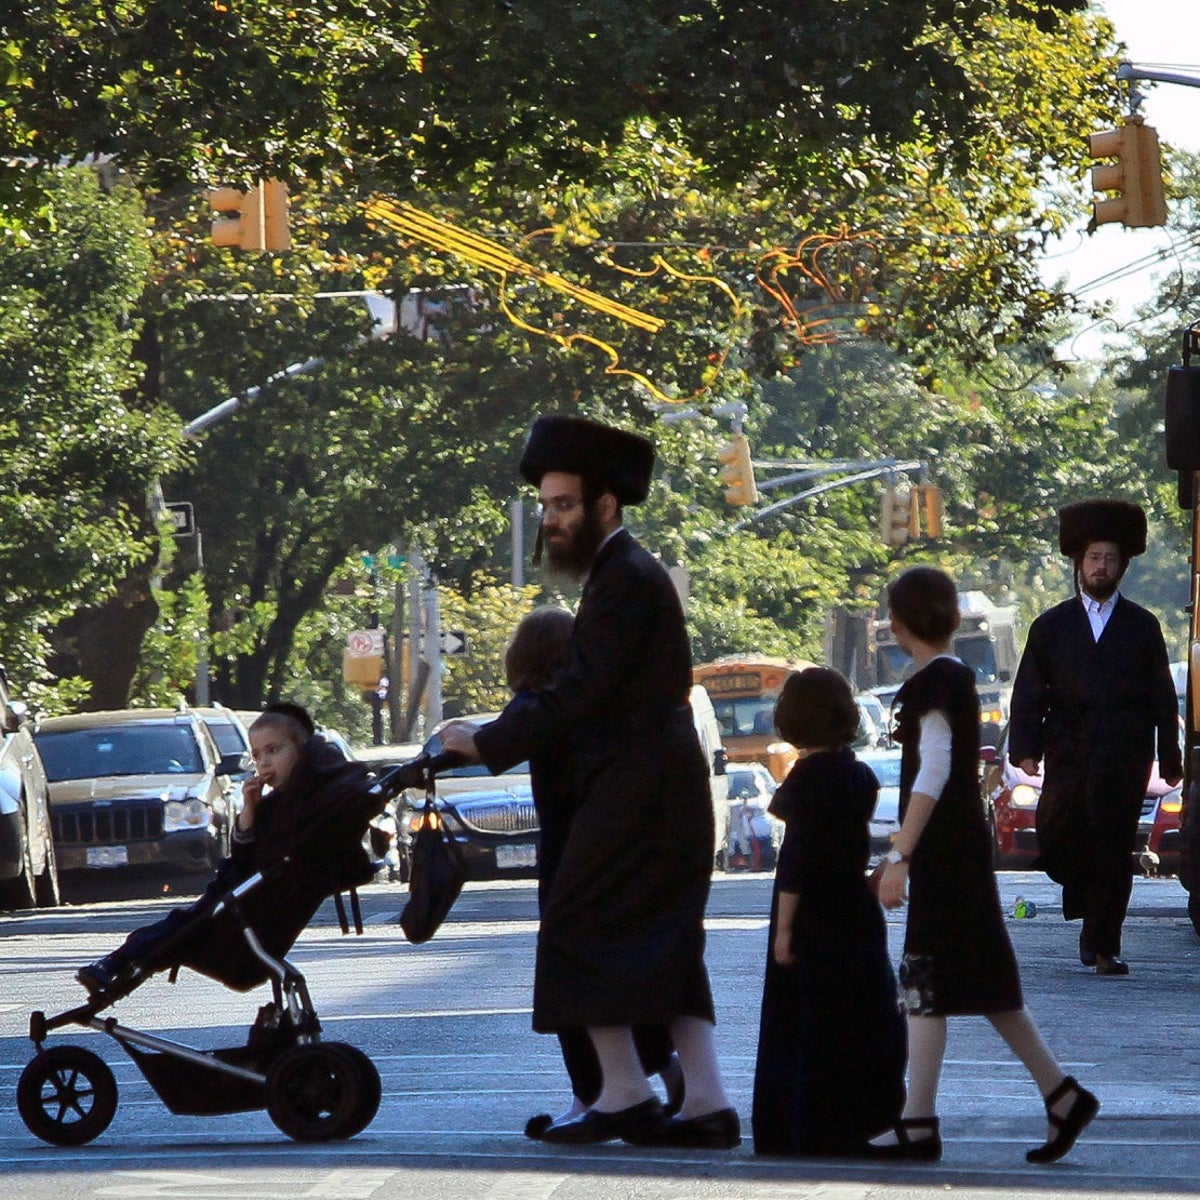 ultra-Orthodox residents of Borough Park, Brooklyn, during the Sukkot holiday, September 20, 2013.